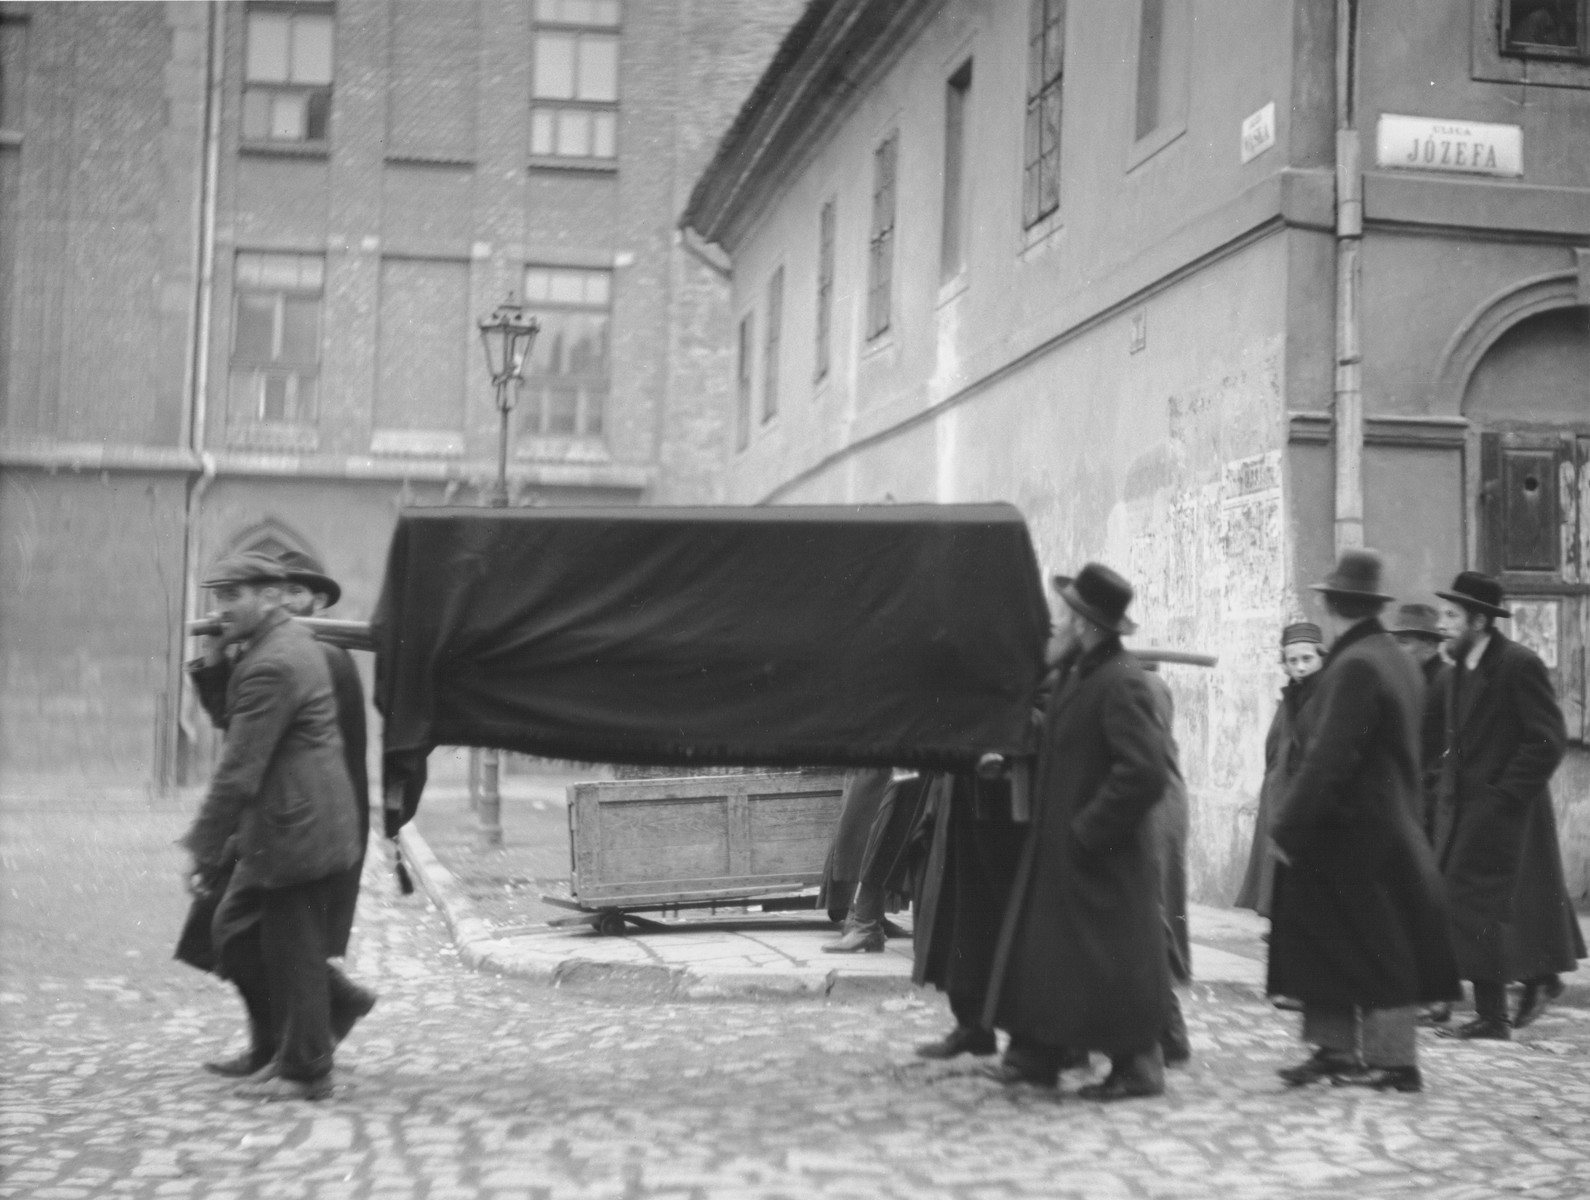 Religious Jews carry a coffin along Jozefa Street in Krakow during a funeral procession.